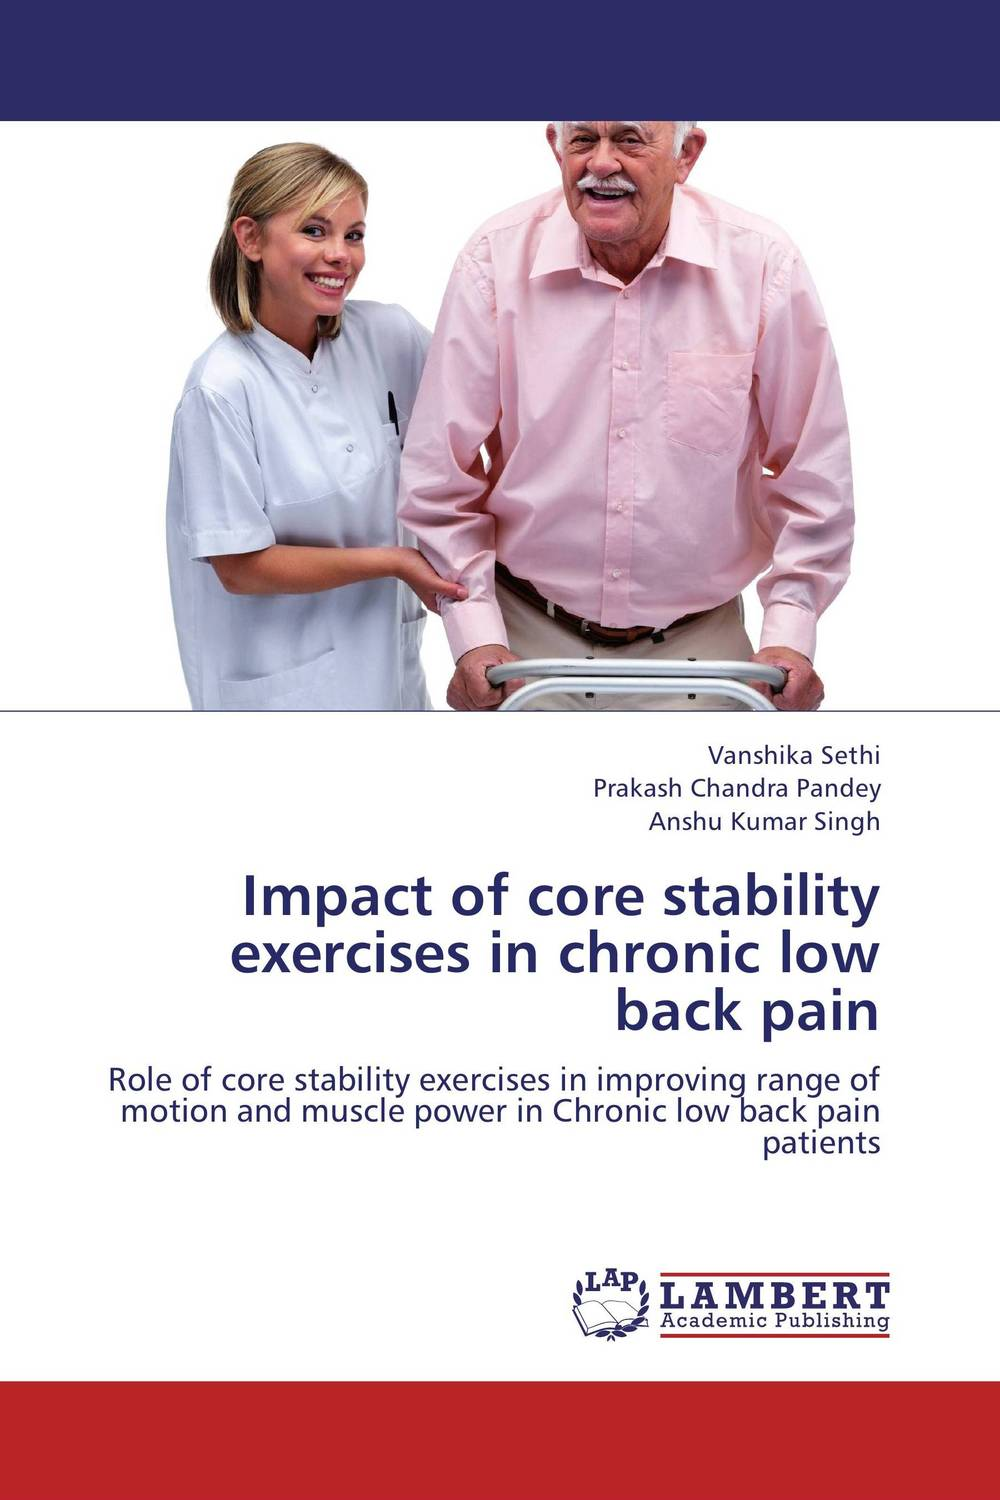 Impact of core stability exercises in chronic low back pain